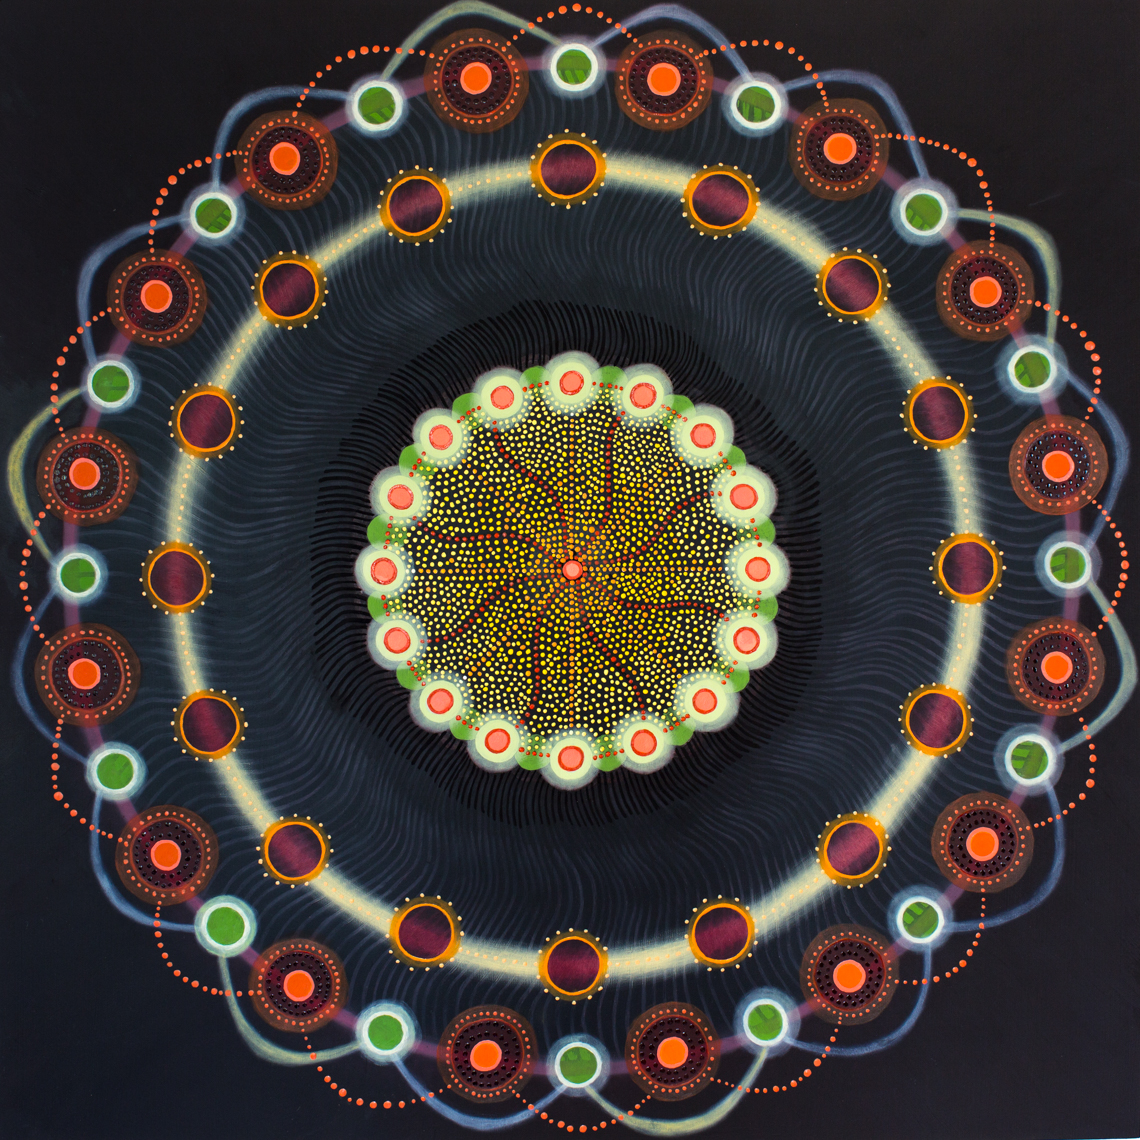 life energy mandala #238, oil on panel, 30x30 inches, commission